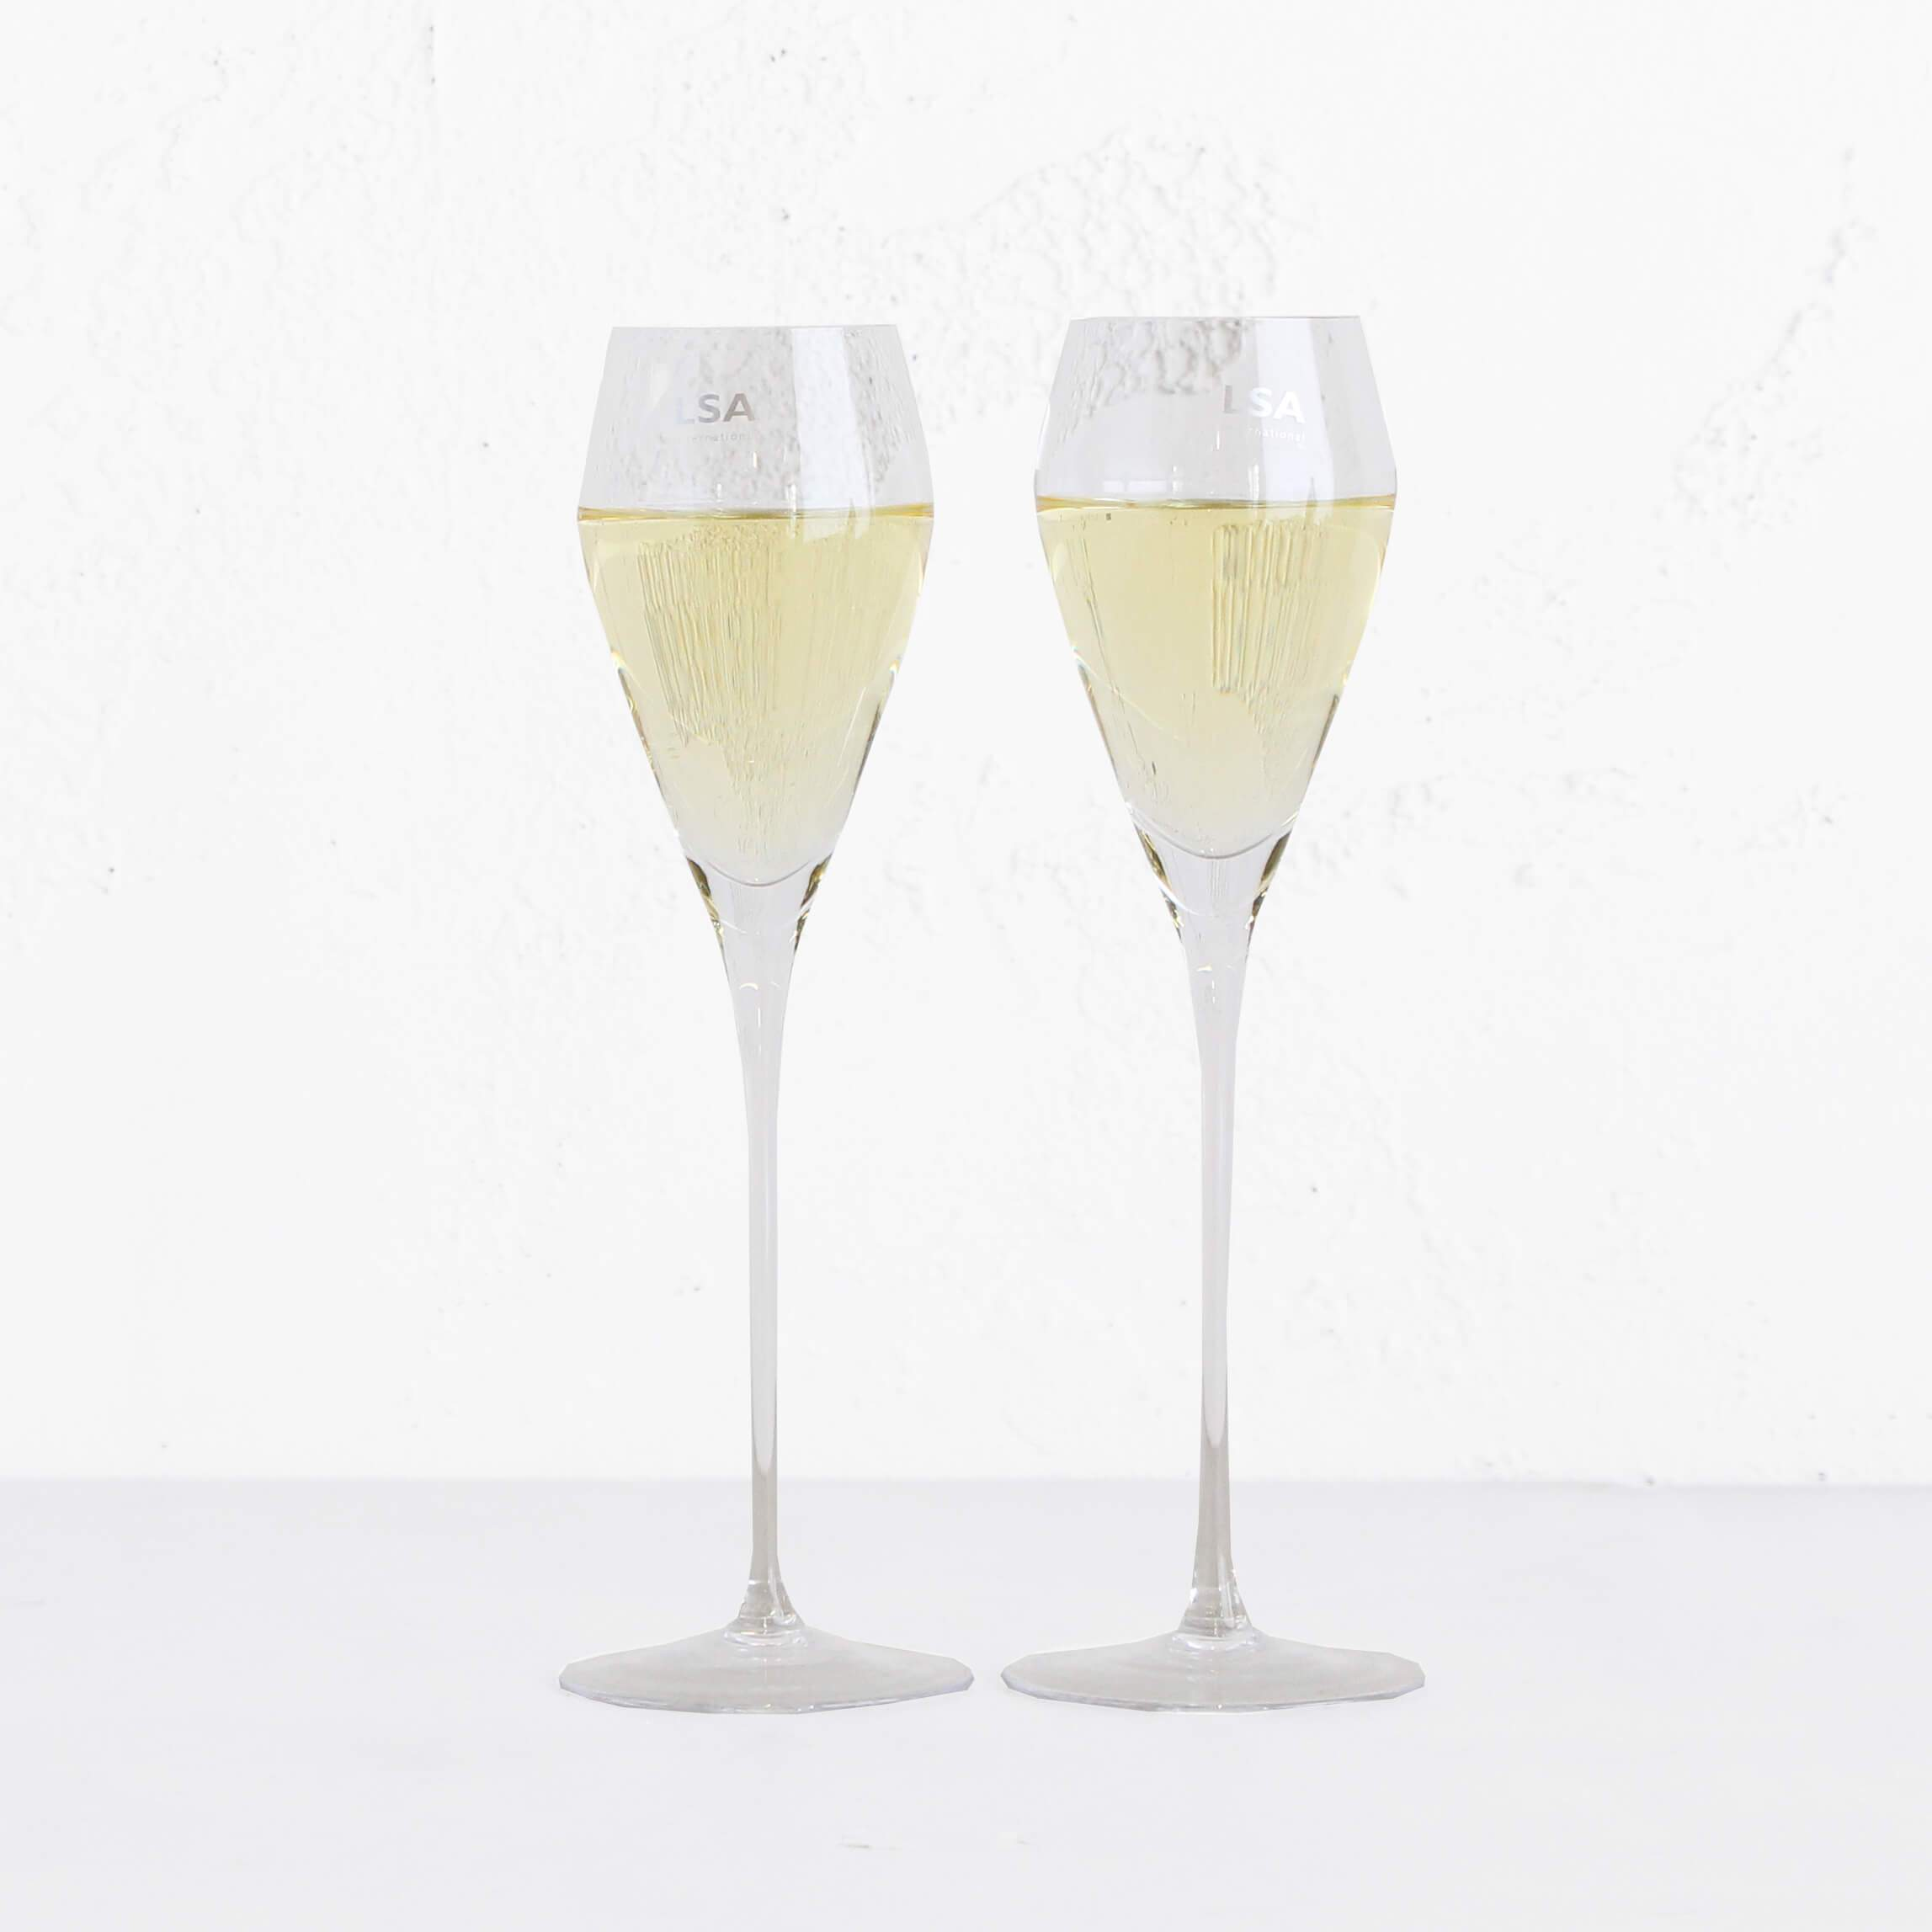 LSA PROSECCO OR CHAMPAGNE FLUTES  |  BOX SET OF 2 GLASSES